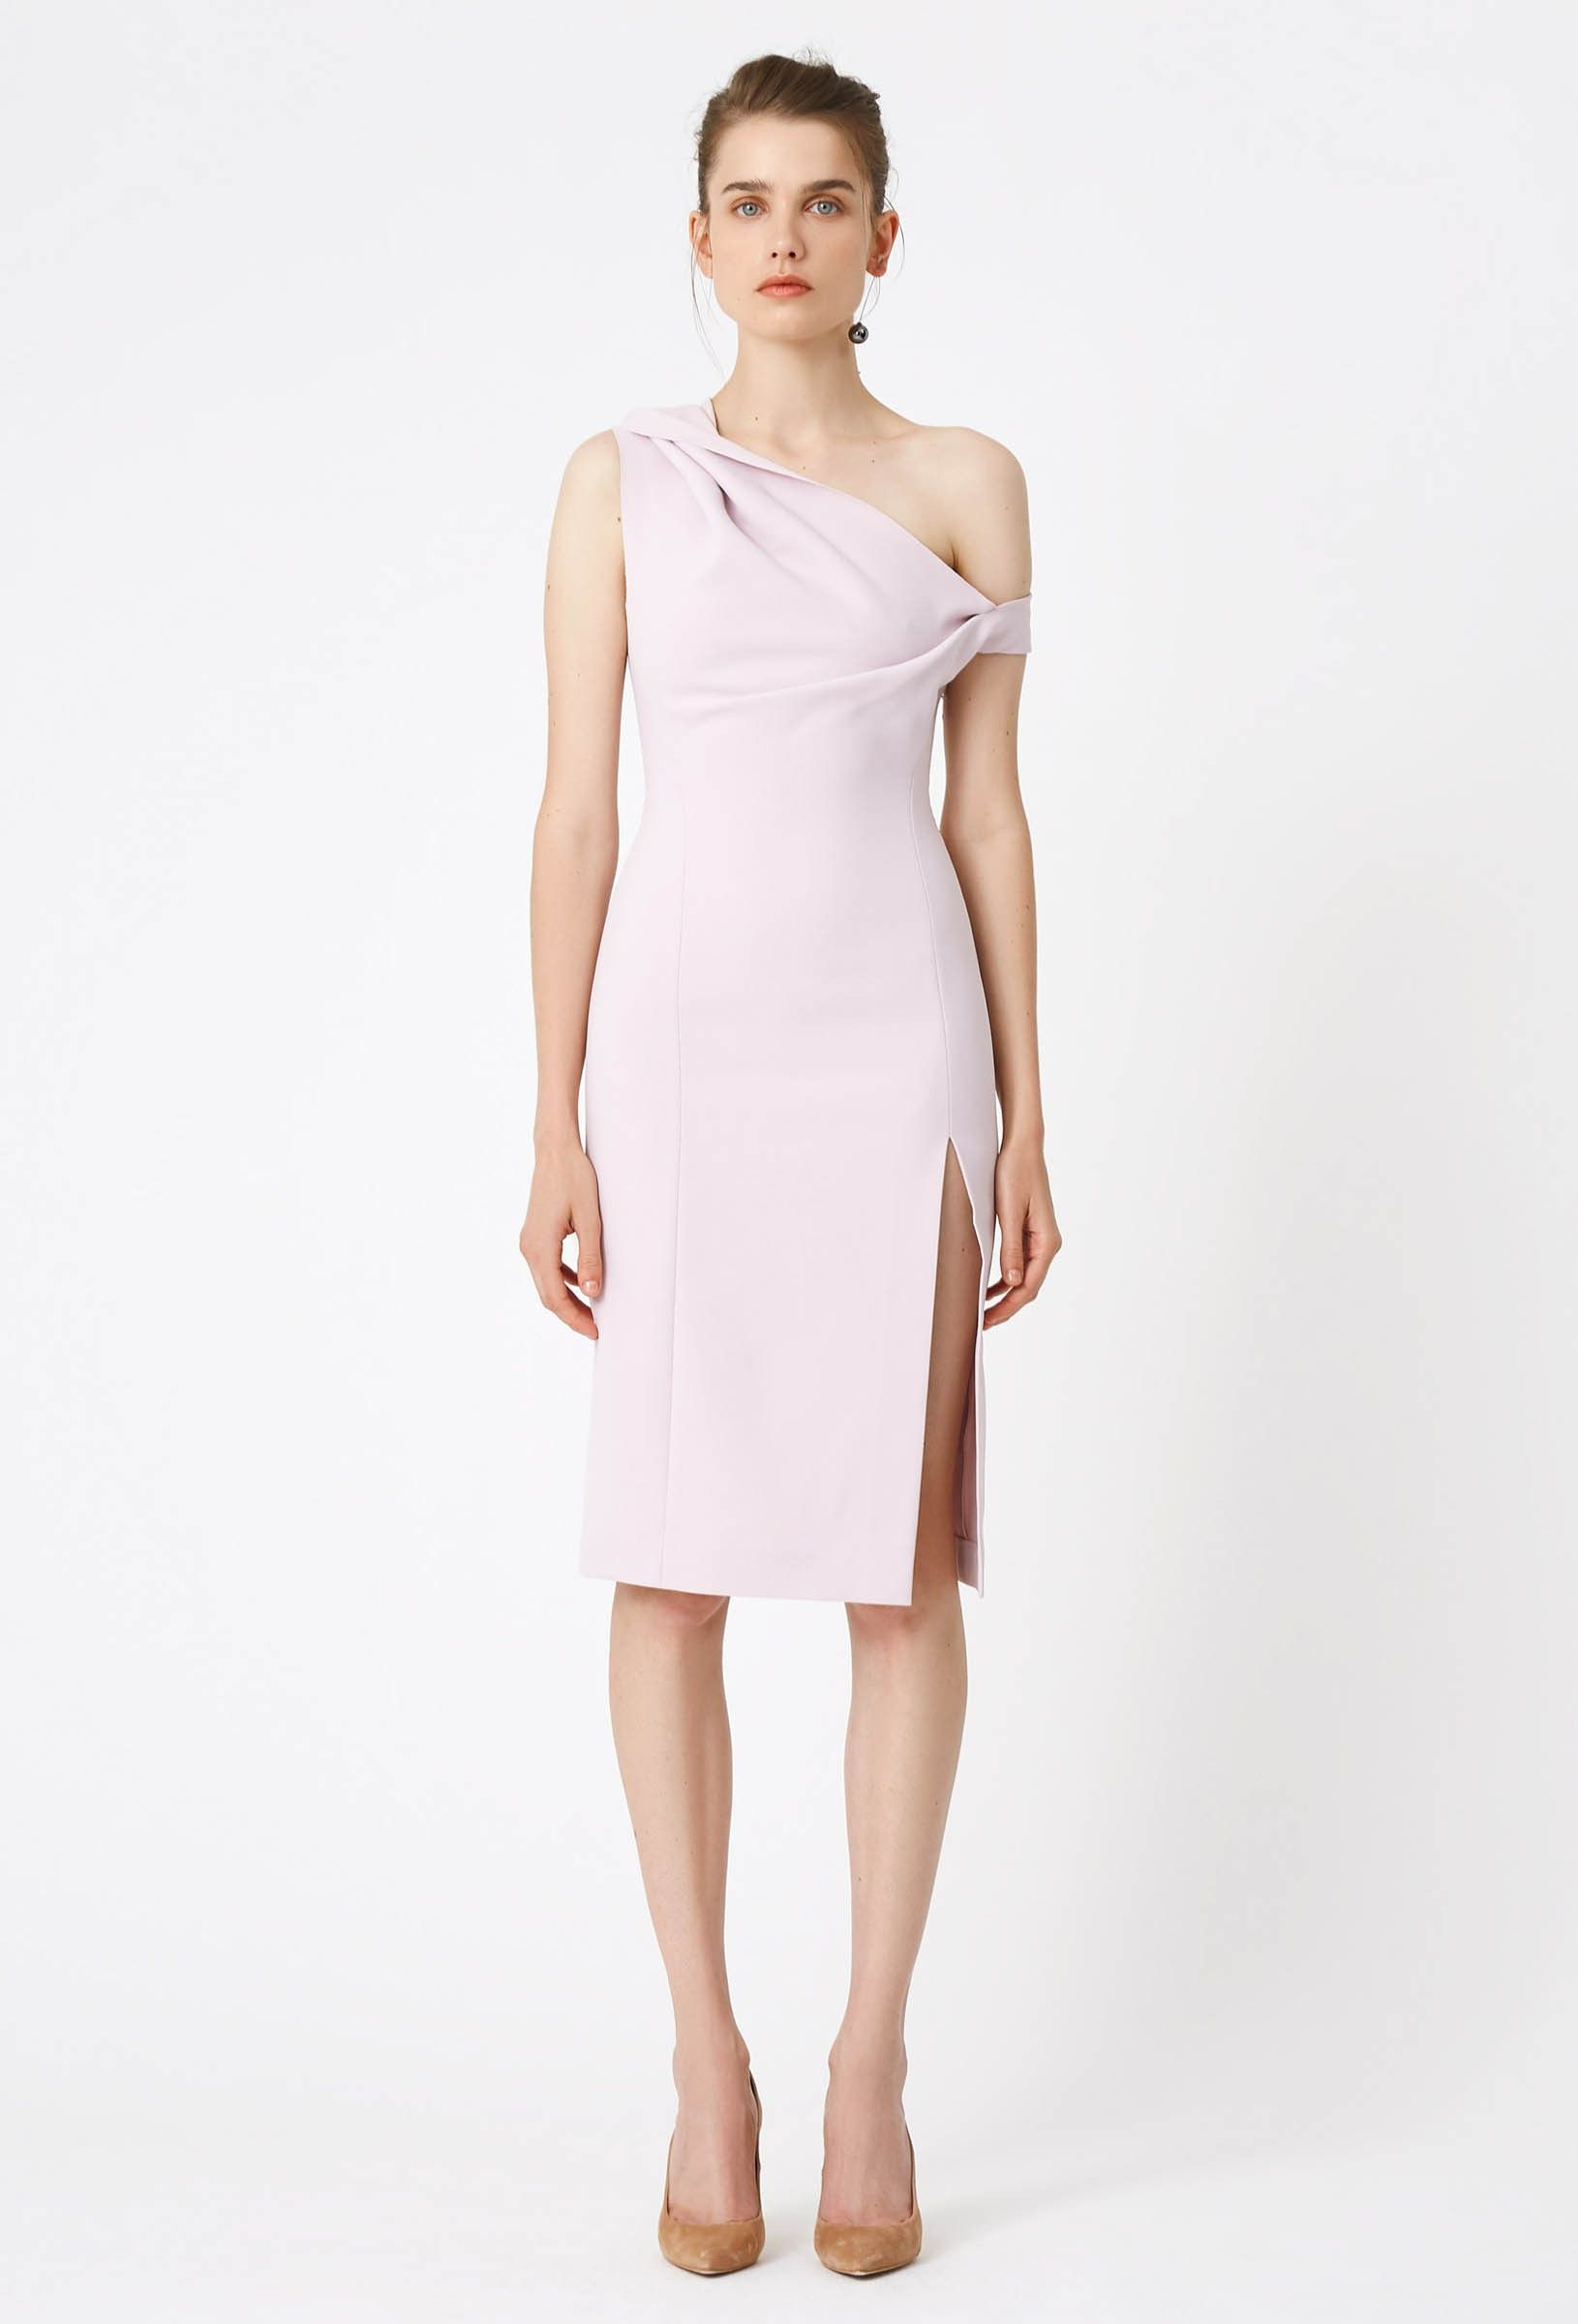 6004b5528d19 Image 3 of AQ AQ Didion One Structured Midi Dress with Side Split · Pink